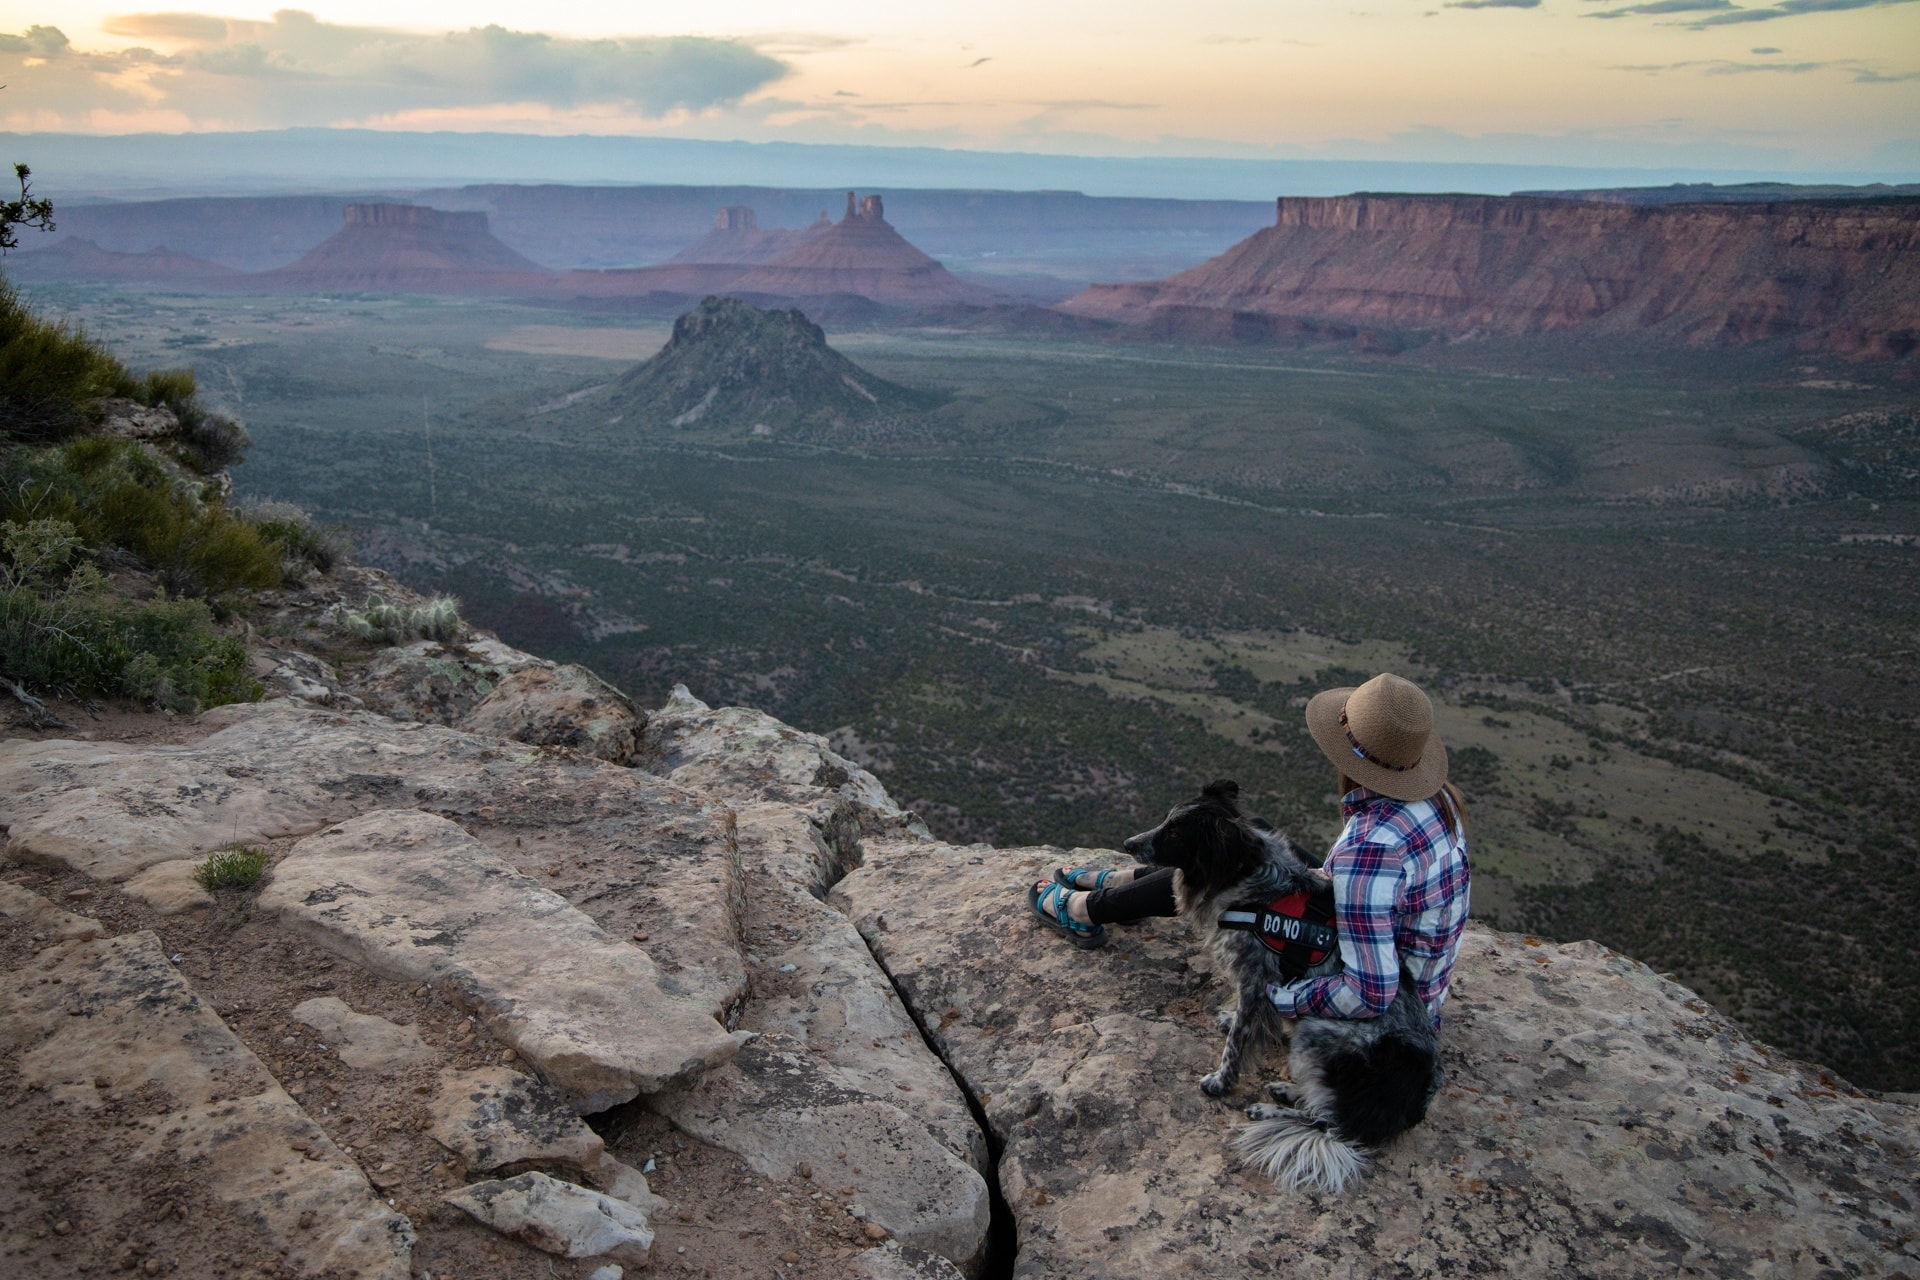 Porcupine Rim Campground // The best trails, waterfall hikes, campgrounds and more, that made the list of best things to do in Moab outside of the National Parks.